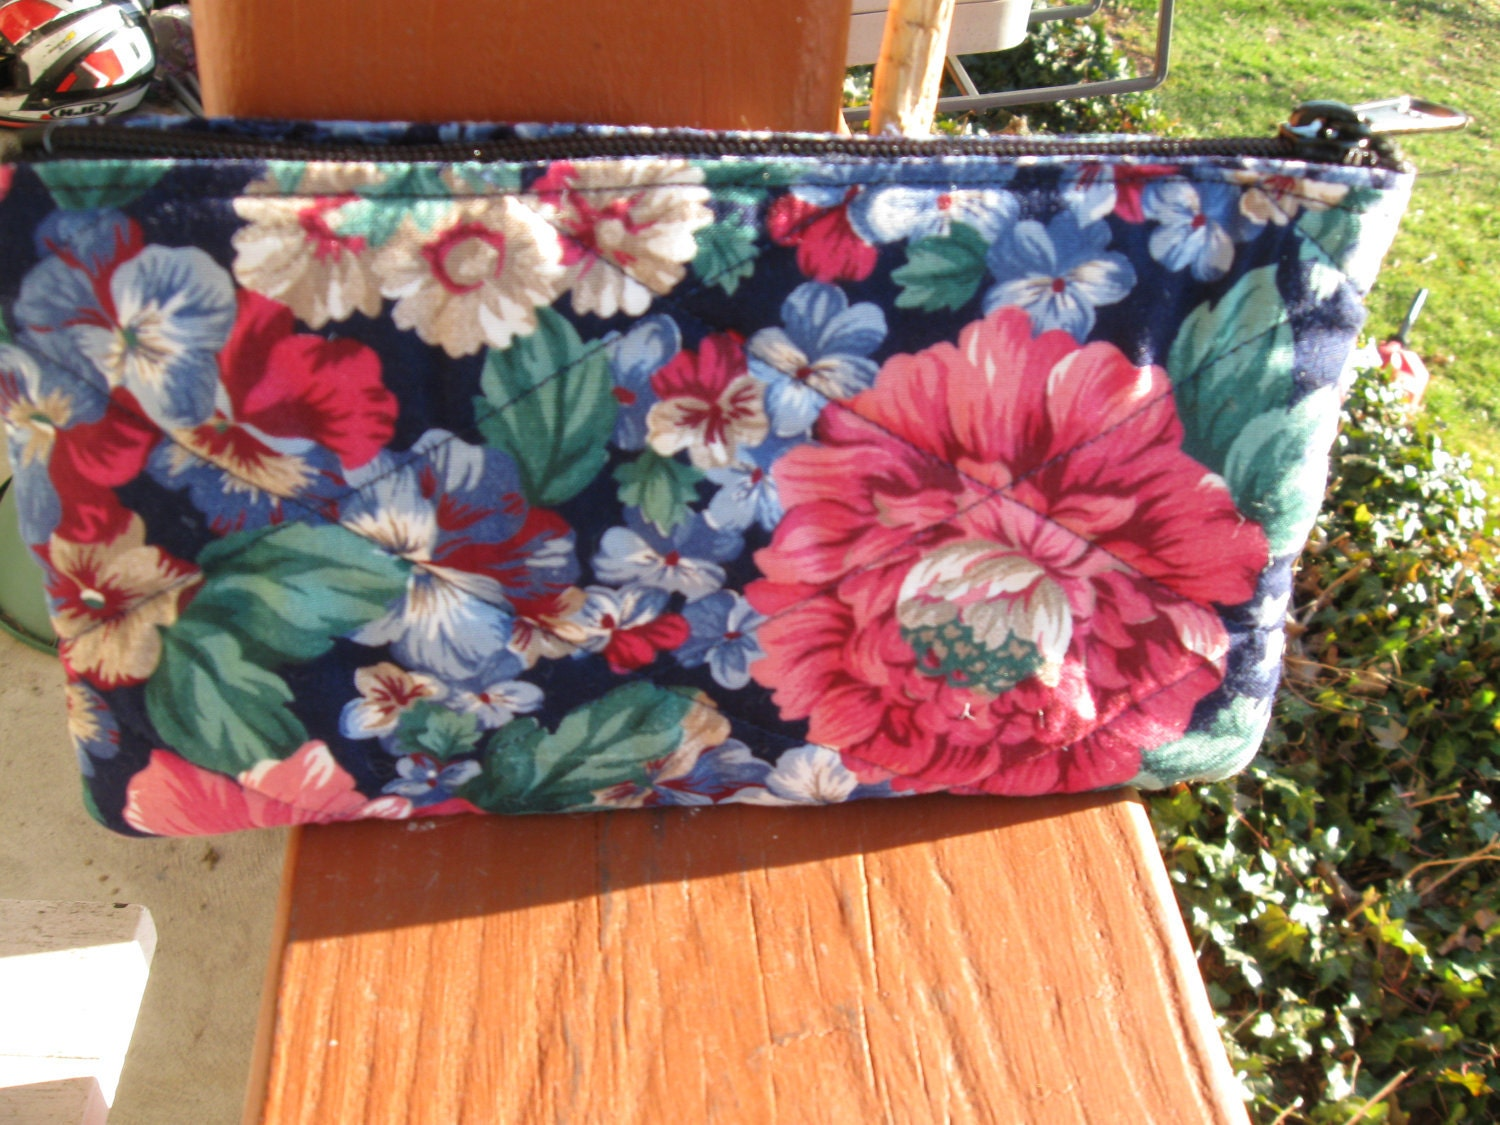 Coupon Organizer Quilted Purse Size Blue Vibrant Floral Material w/ Seperators